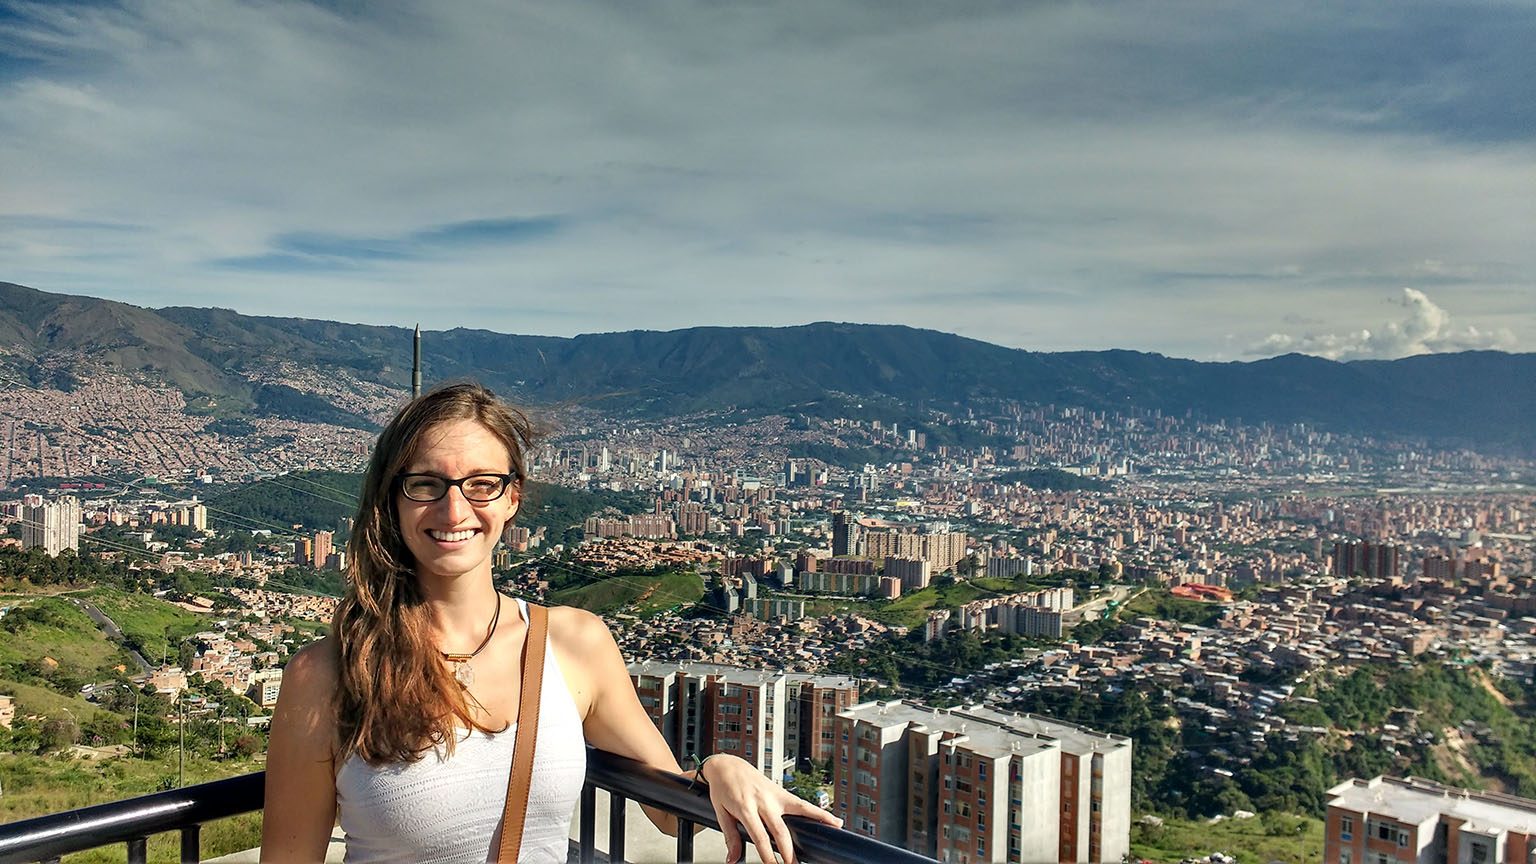 One of numerous gorgeous viewpoints in Medellin, Colombia